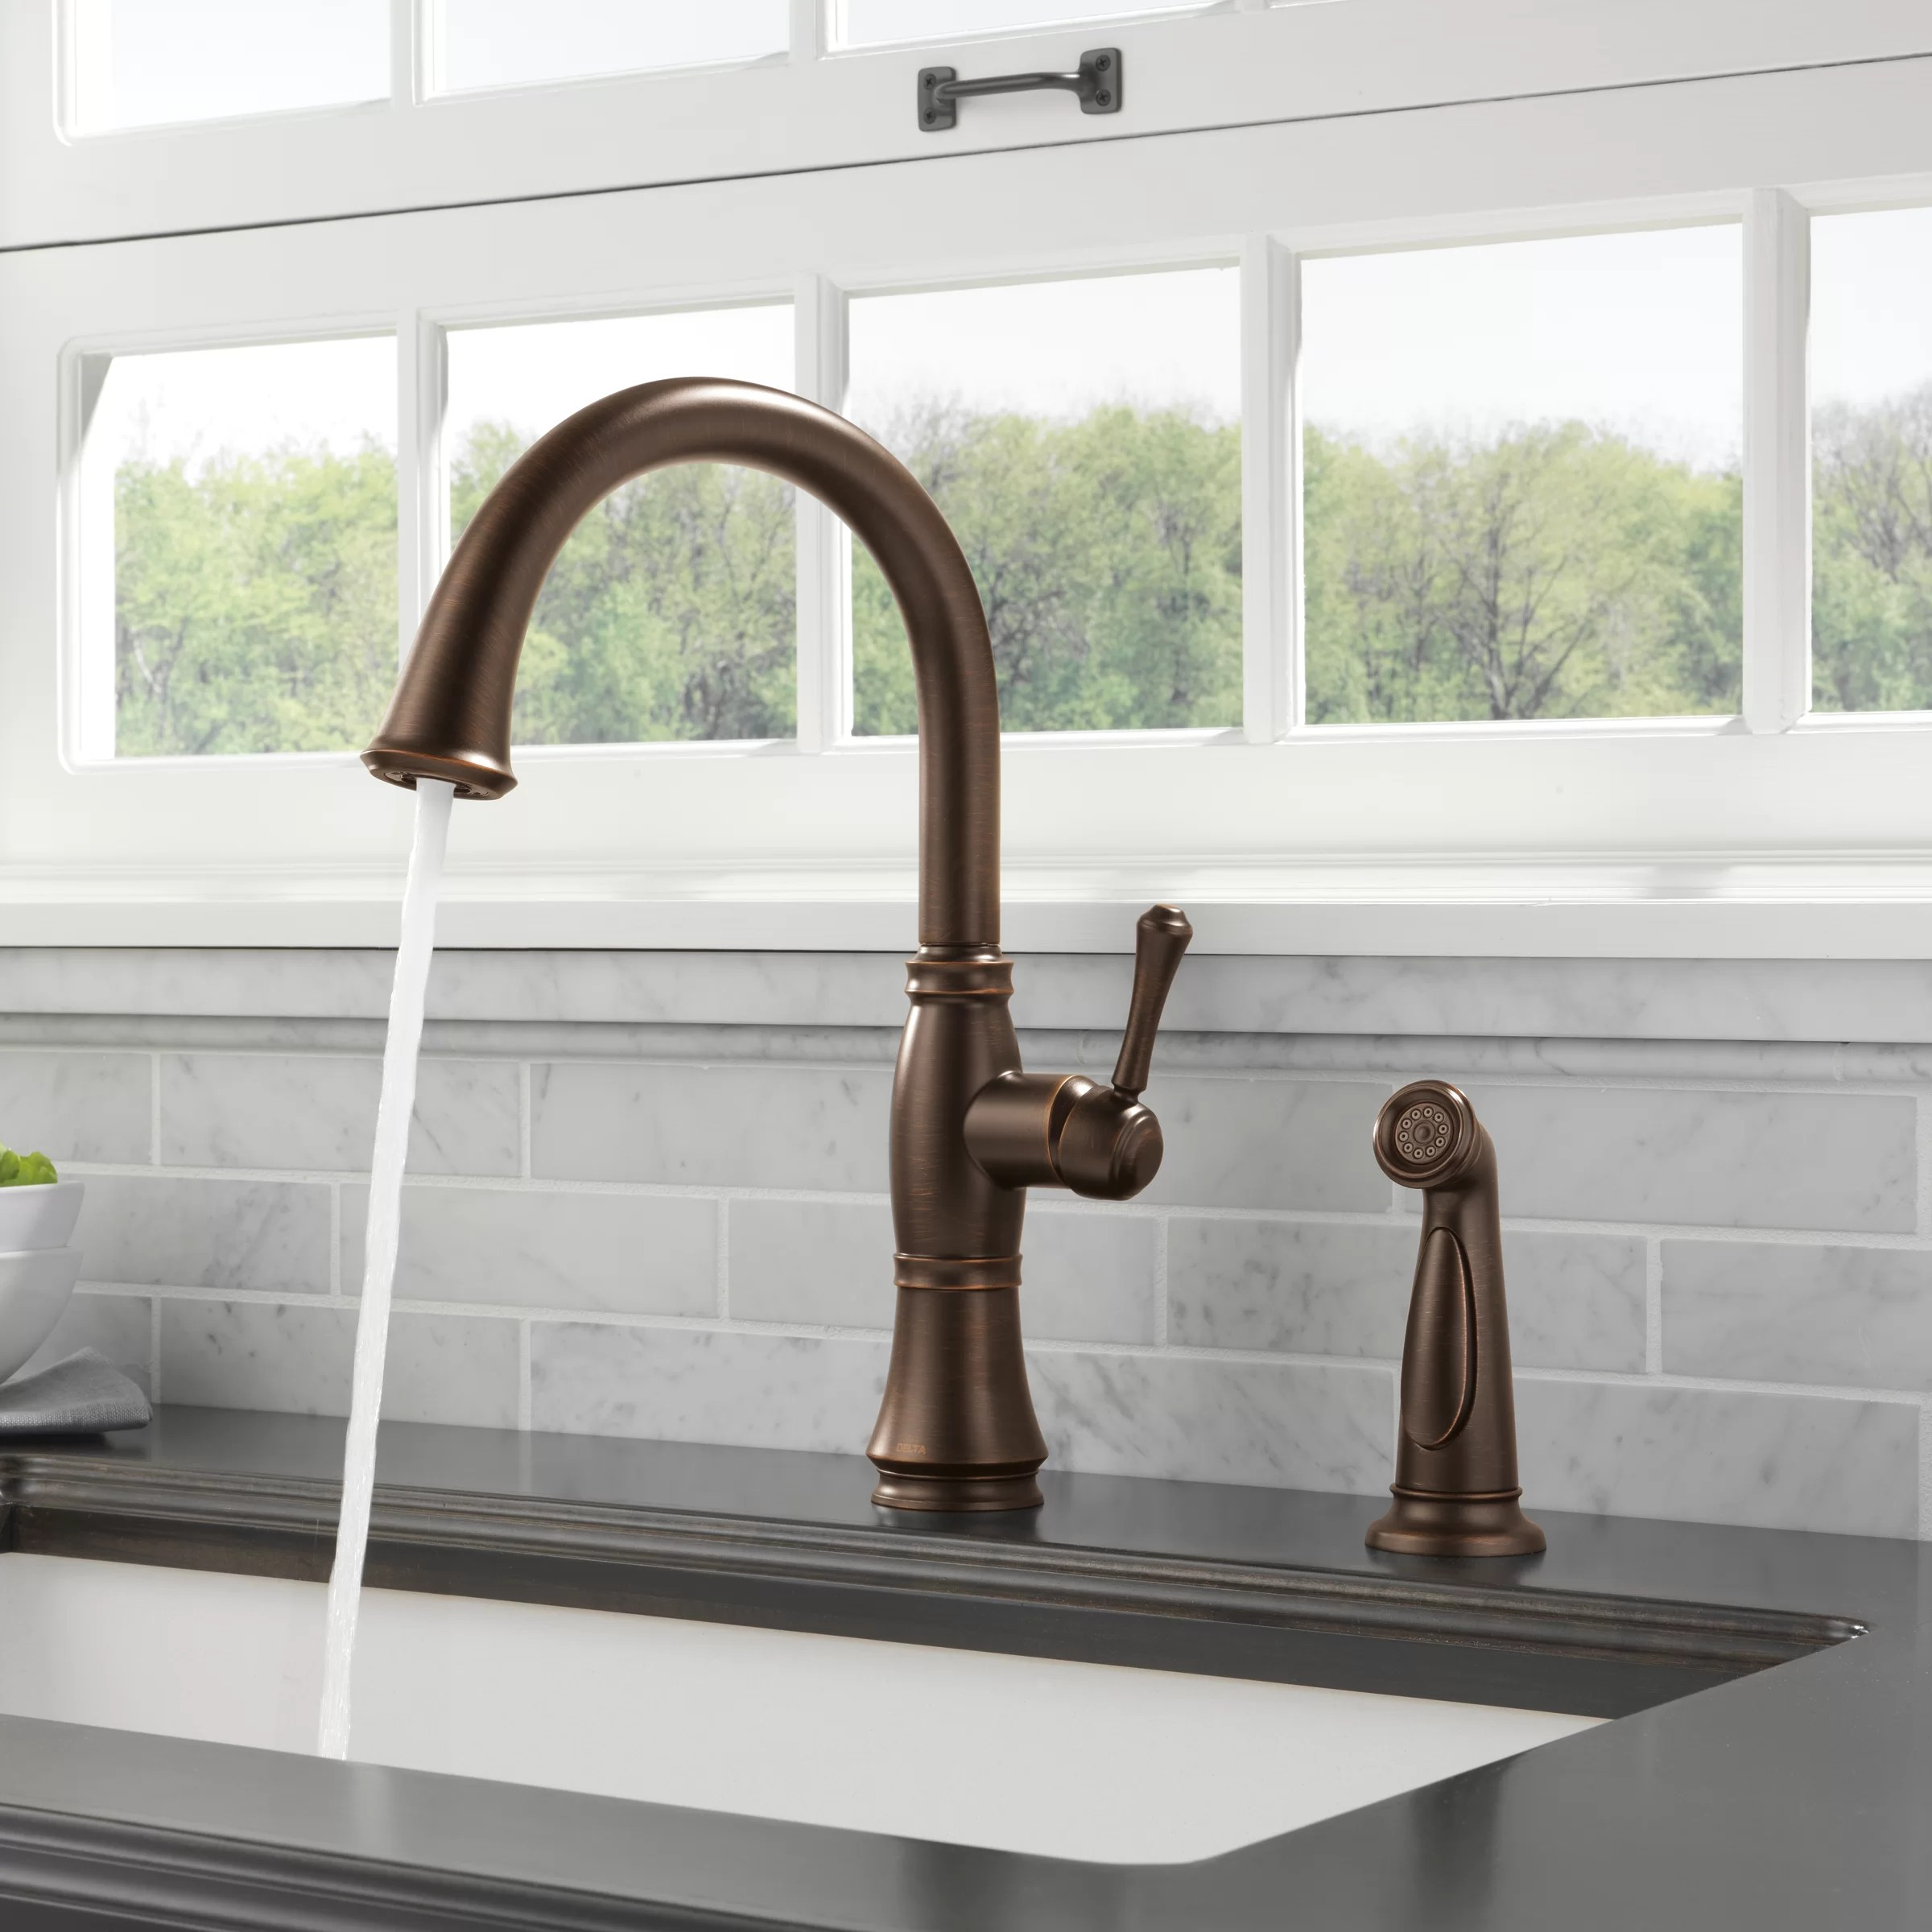 stainless steel kraus kpf 1650ss modern nola single lever commercial style kitchen faucet tools home improvement kitchen bathroom fixtures